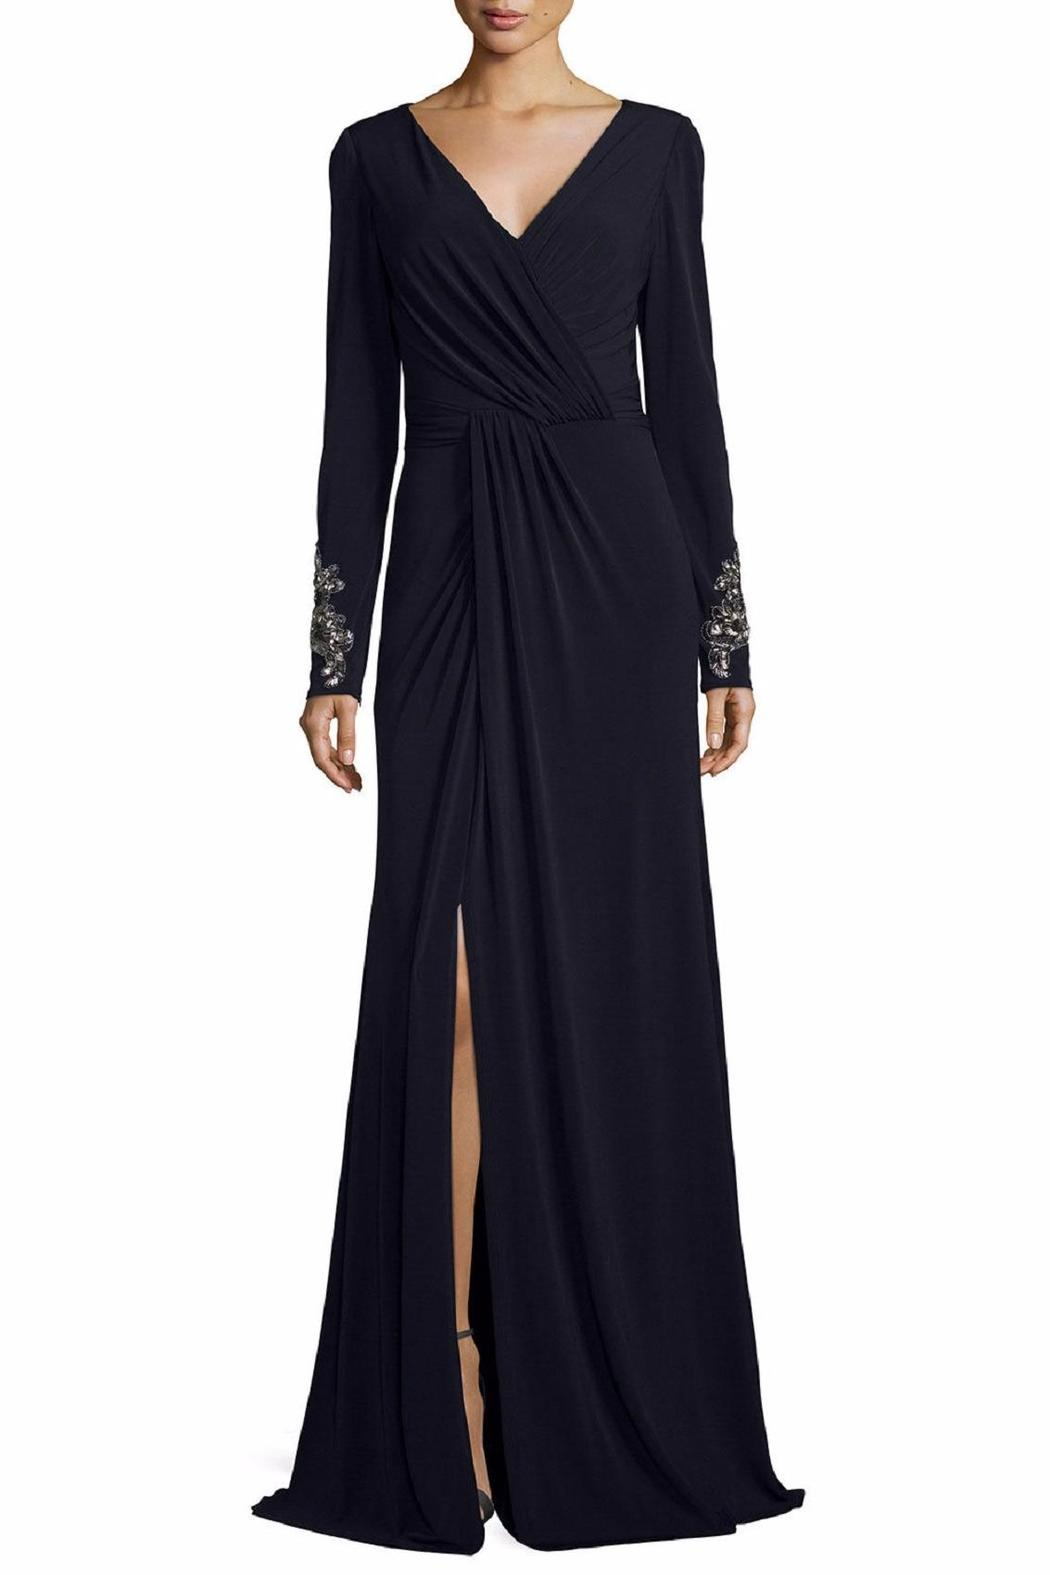 David Meister Long Sleeve Gown - Main Image